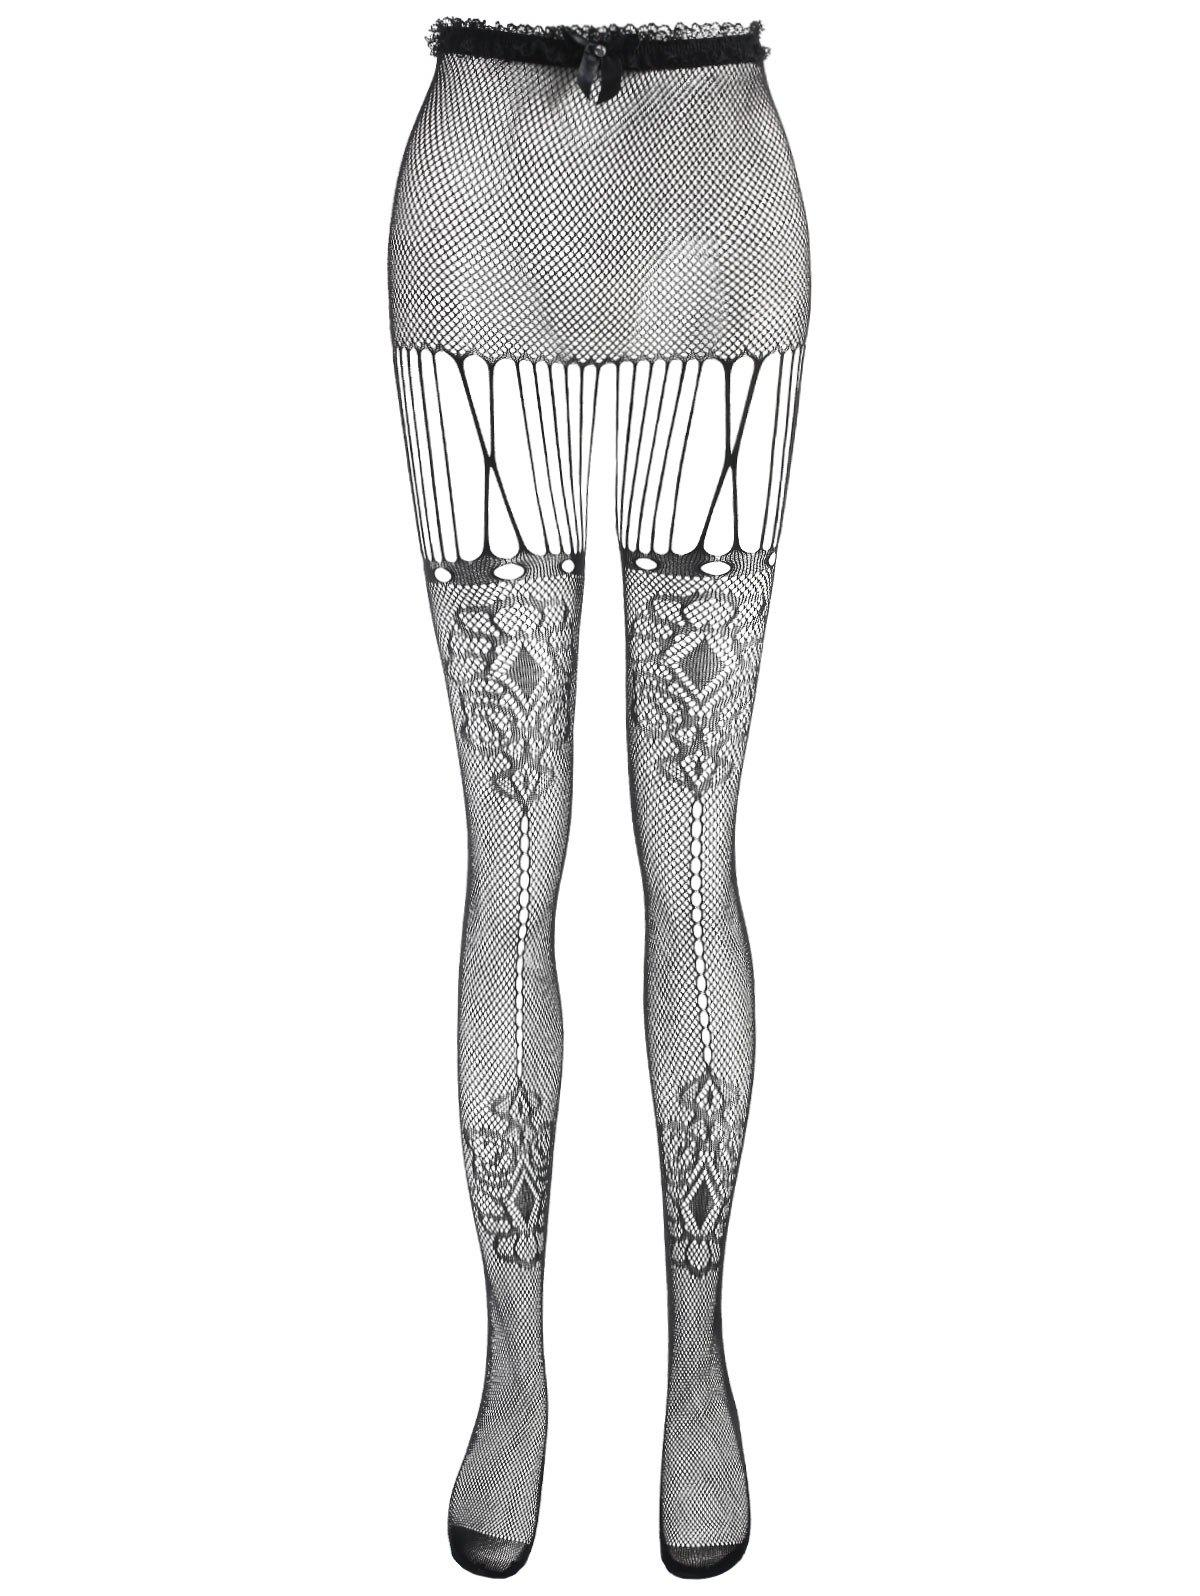 183f4011bb9647 33% OFF] High Waisted Fishnet Tights | Rosegal